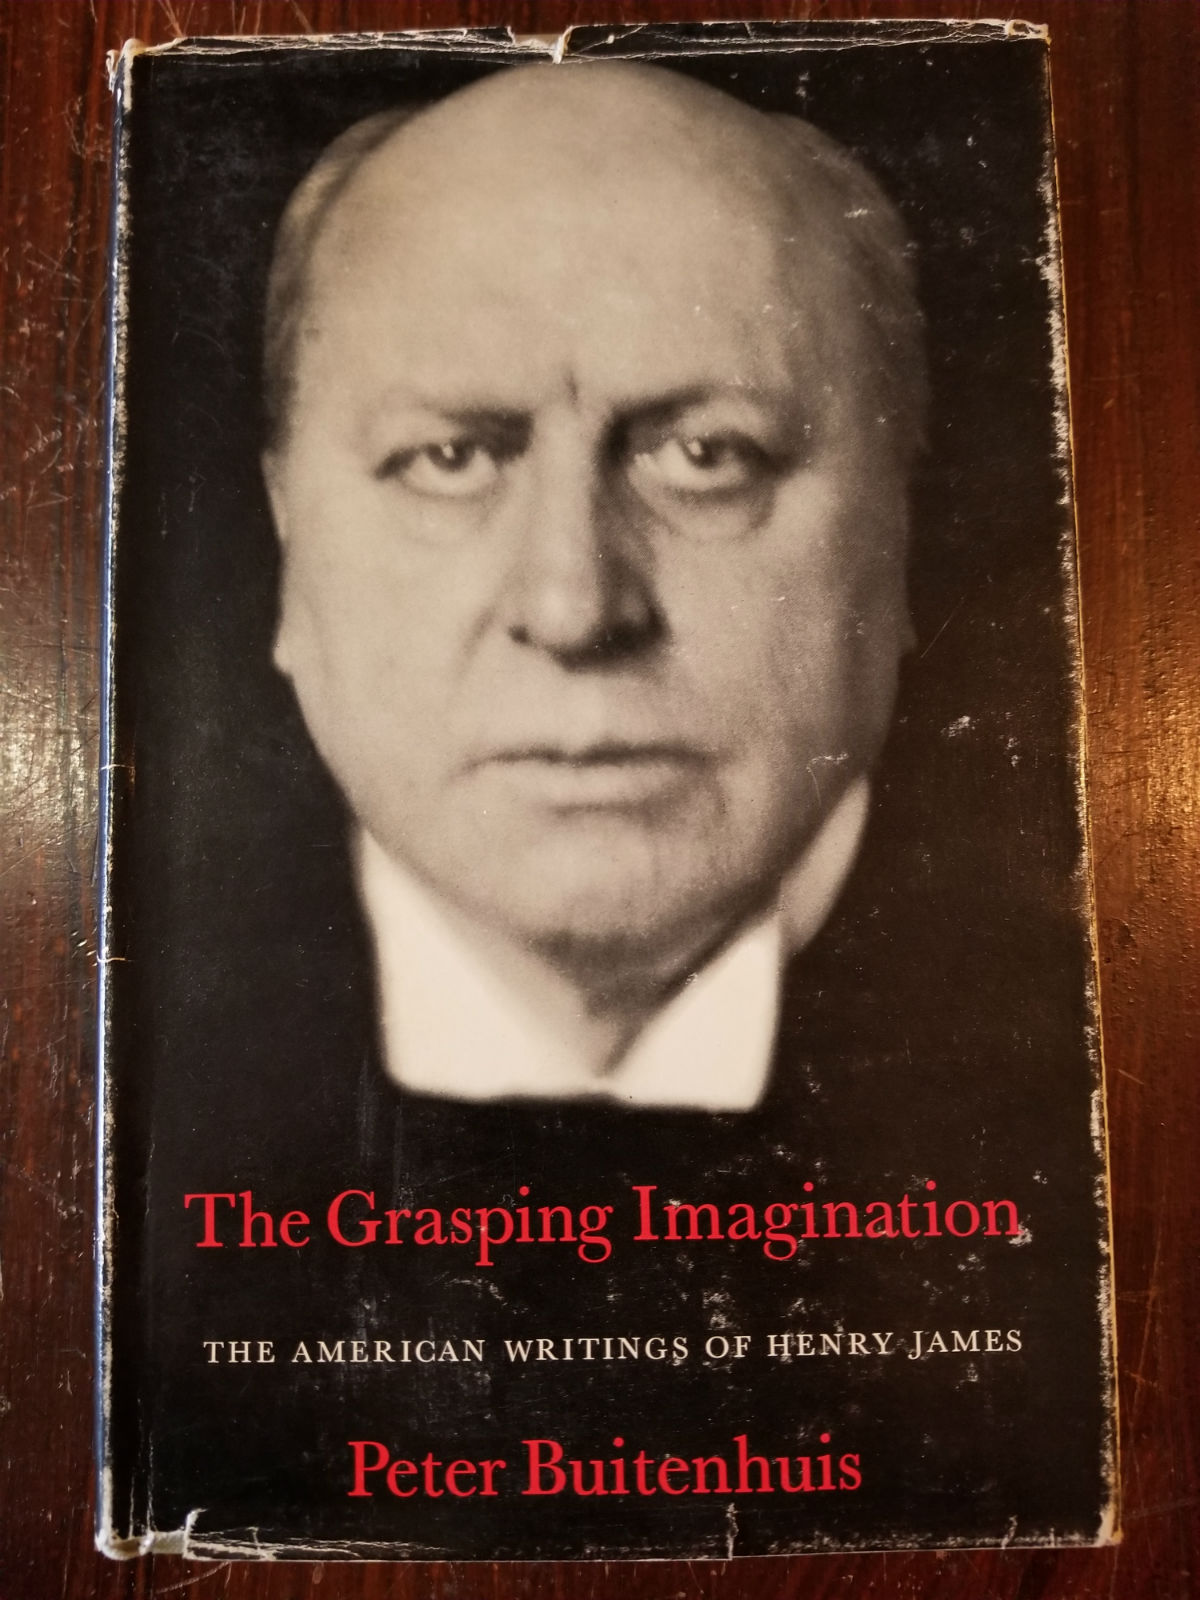 Henry James The Grasping Imagination The American Writings Of Henry James By Peter Martinus Buitenhuis On Uncharted Books